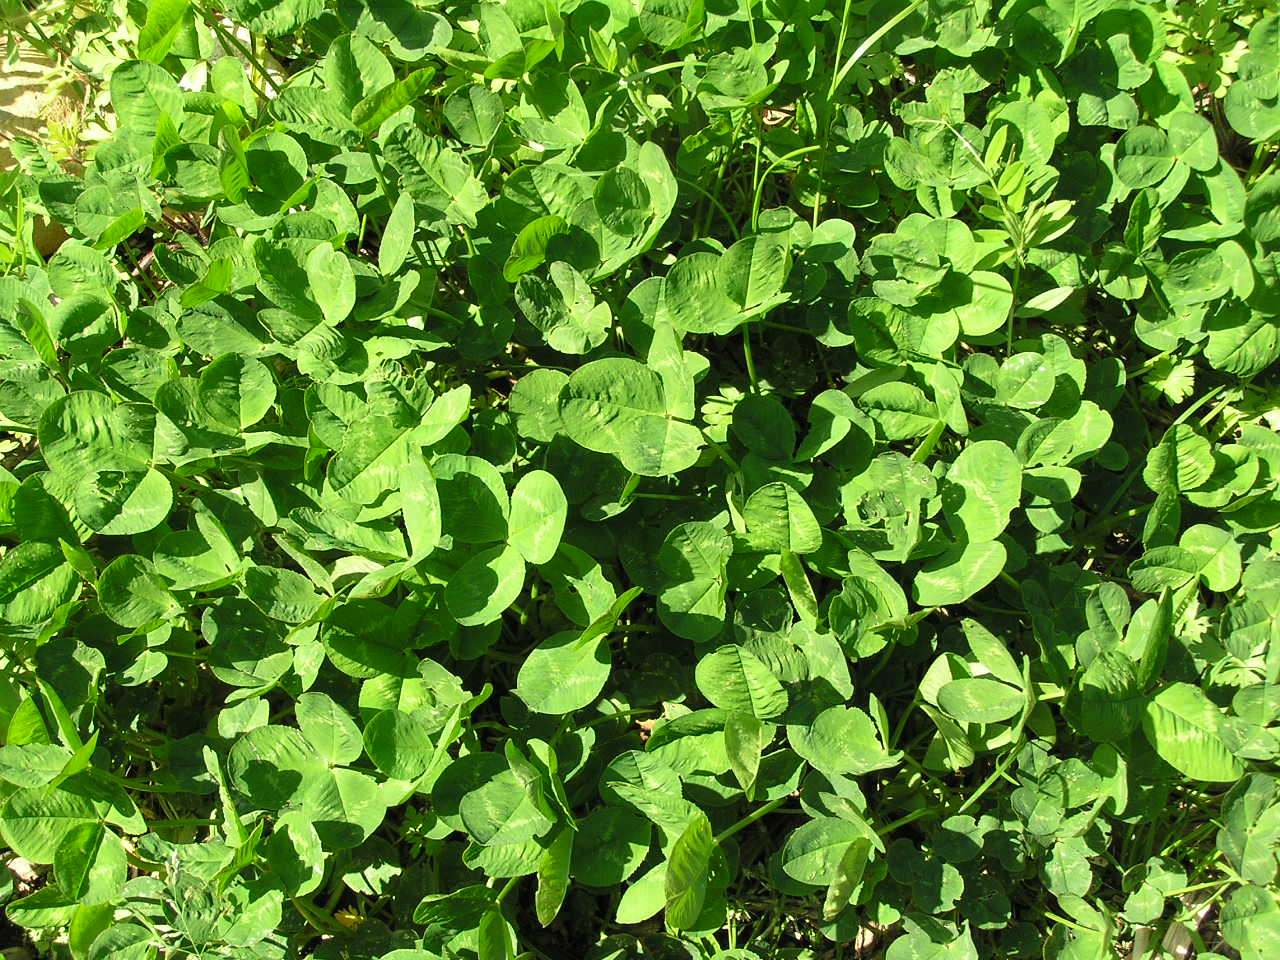 Weeds in flower beds identify - Identifying And Harvesting Edible Weeds In The Garden A Life Unprocessed